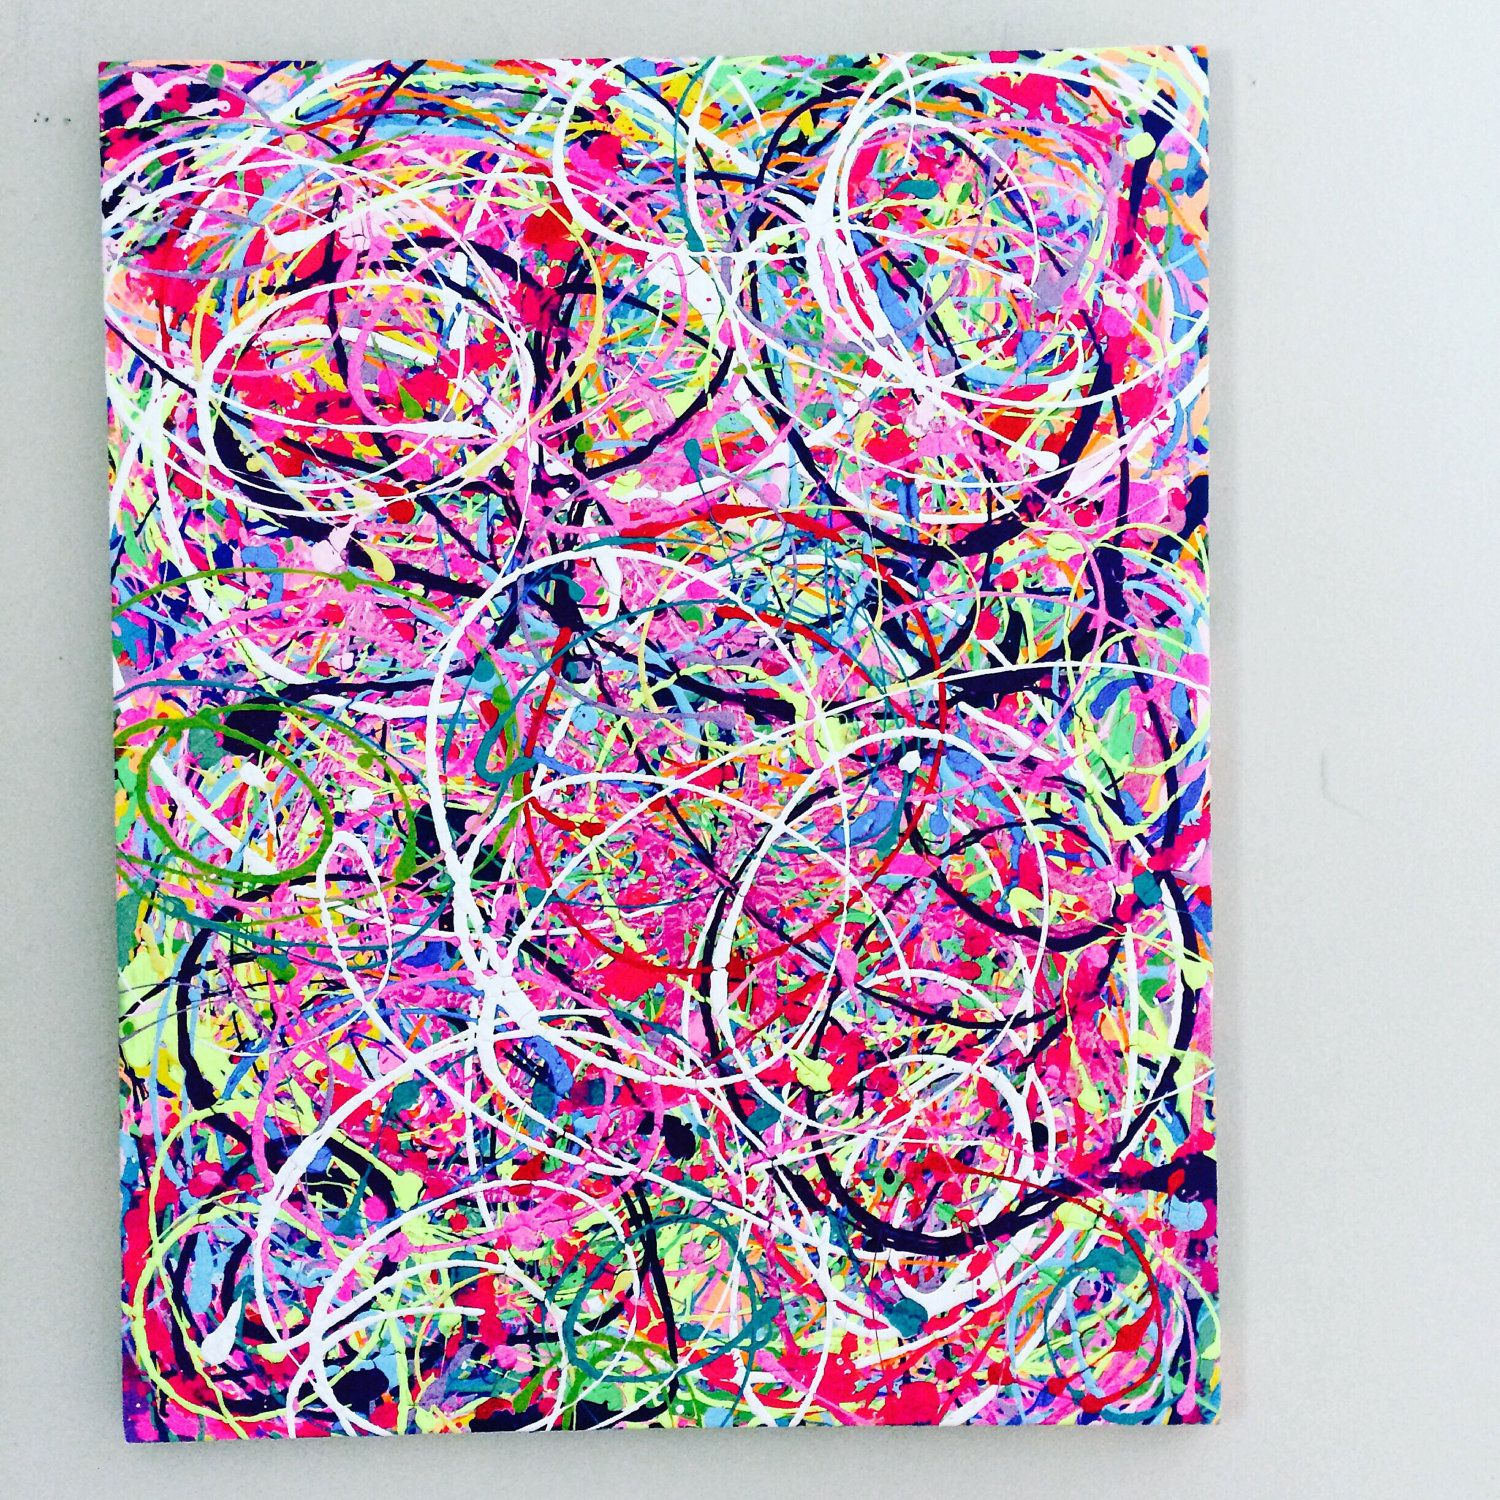 Abstract Pink Art XL Original Canvas Colorful Painting Large Motion Splatter Acrylic Bright Color By ResemblesMe On Etsy